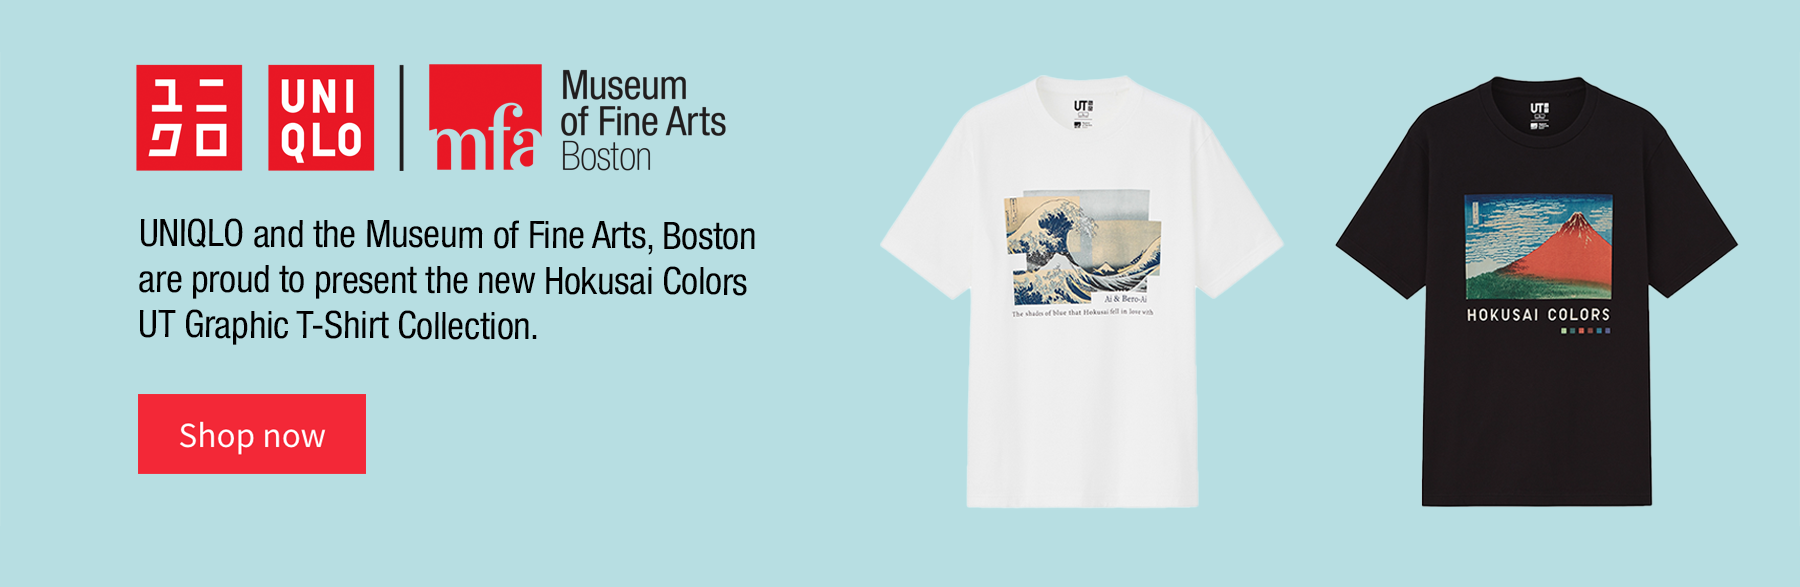 Uniqlo UT MFA Boston Hokusai Colors